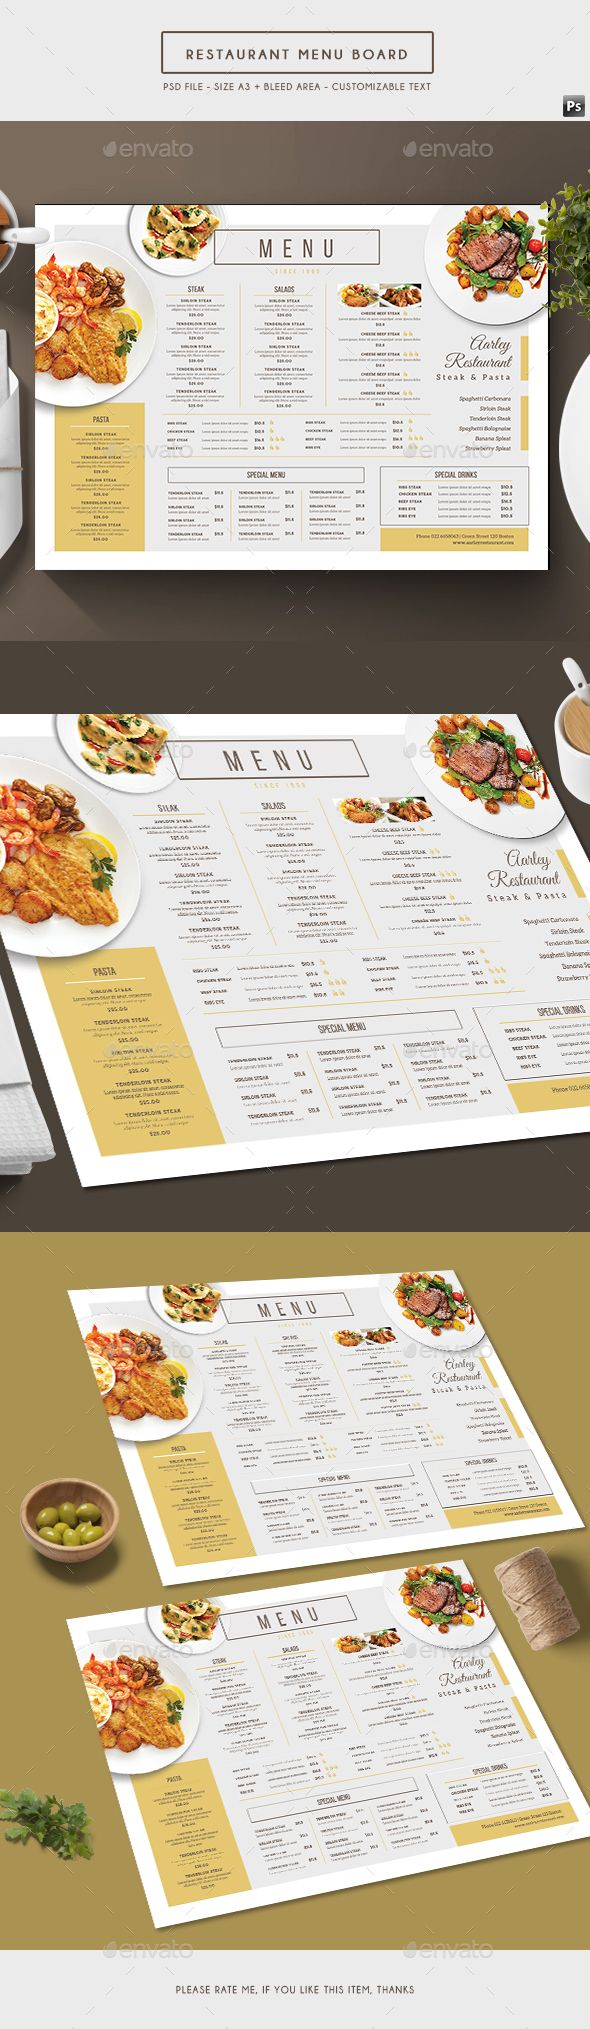 Simple Restaurant Menu Board - Food Menus Print Templates Download here : https://graphicriver.net/item/simple-restaurant-menu-board/19626546?s_rank=17&ref=Al-fatih